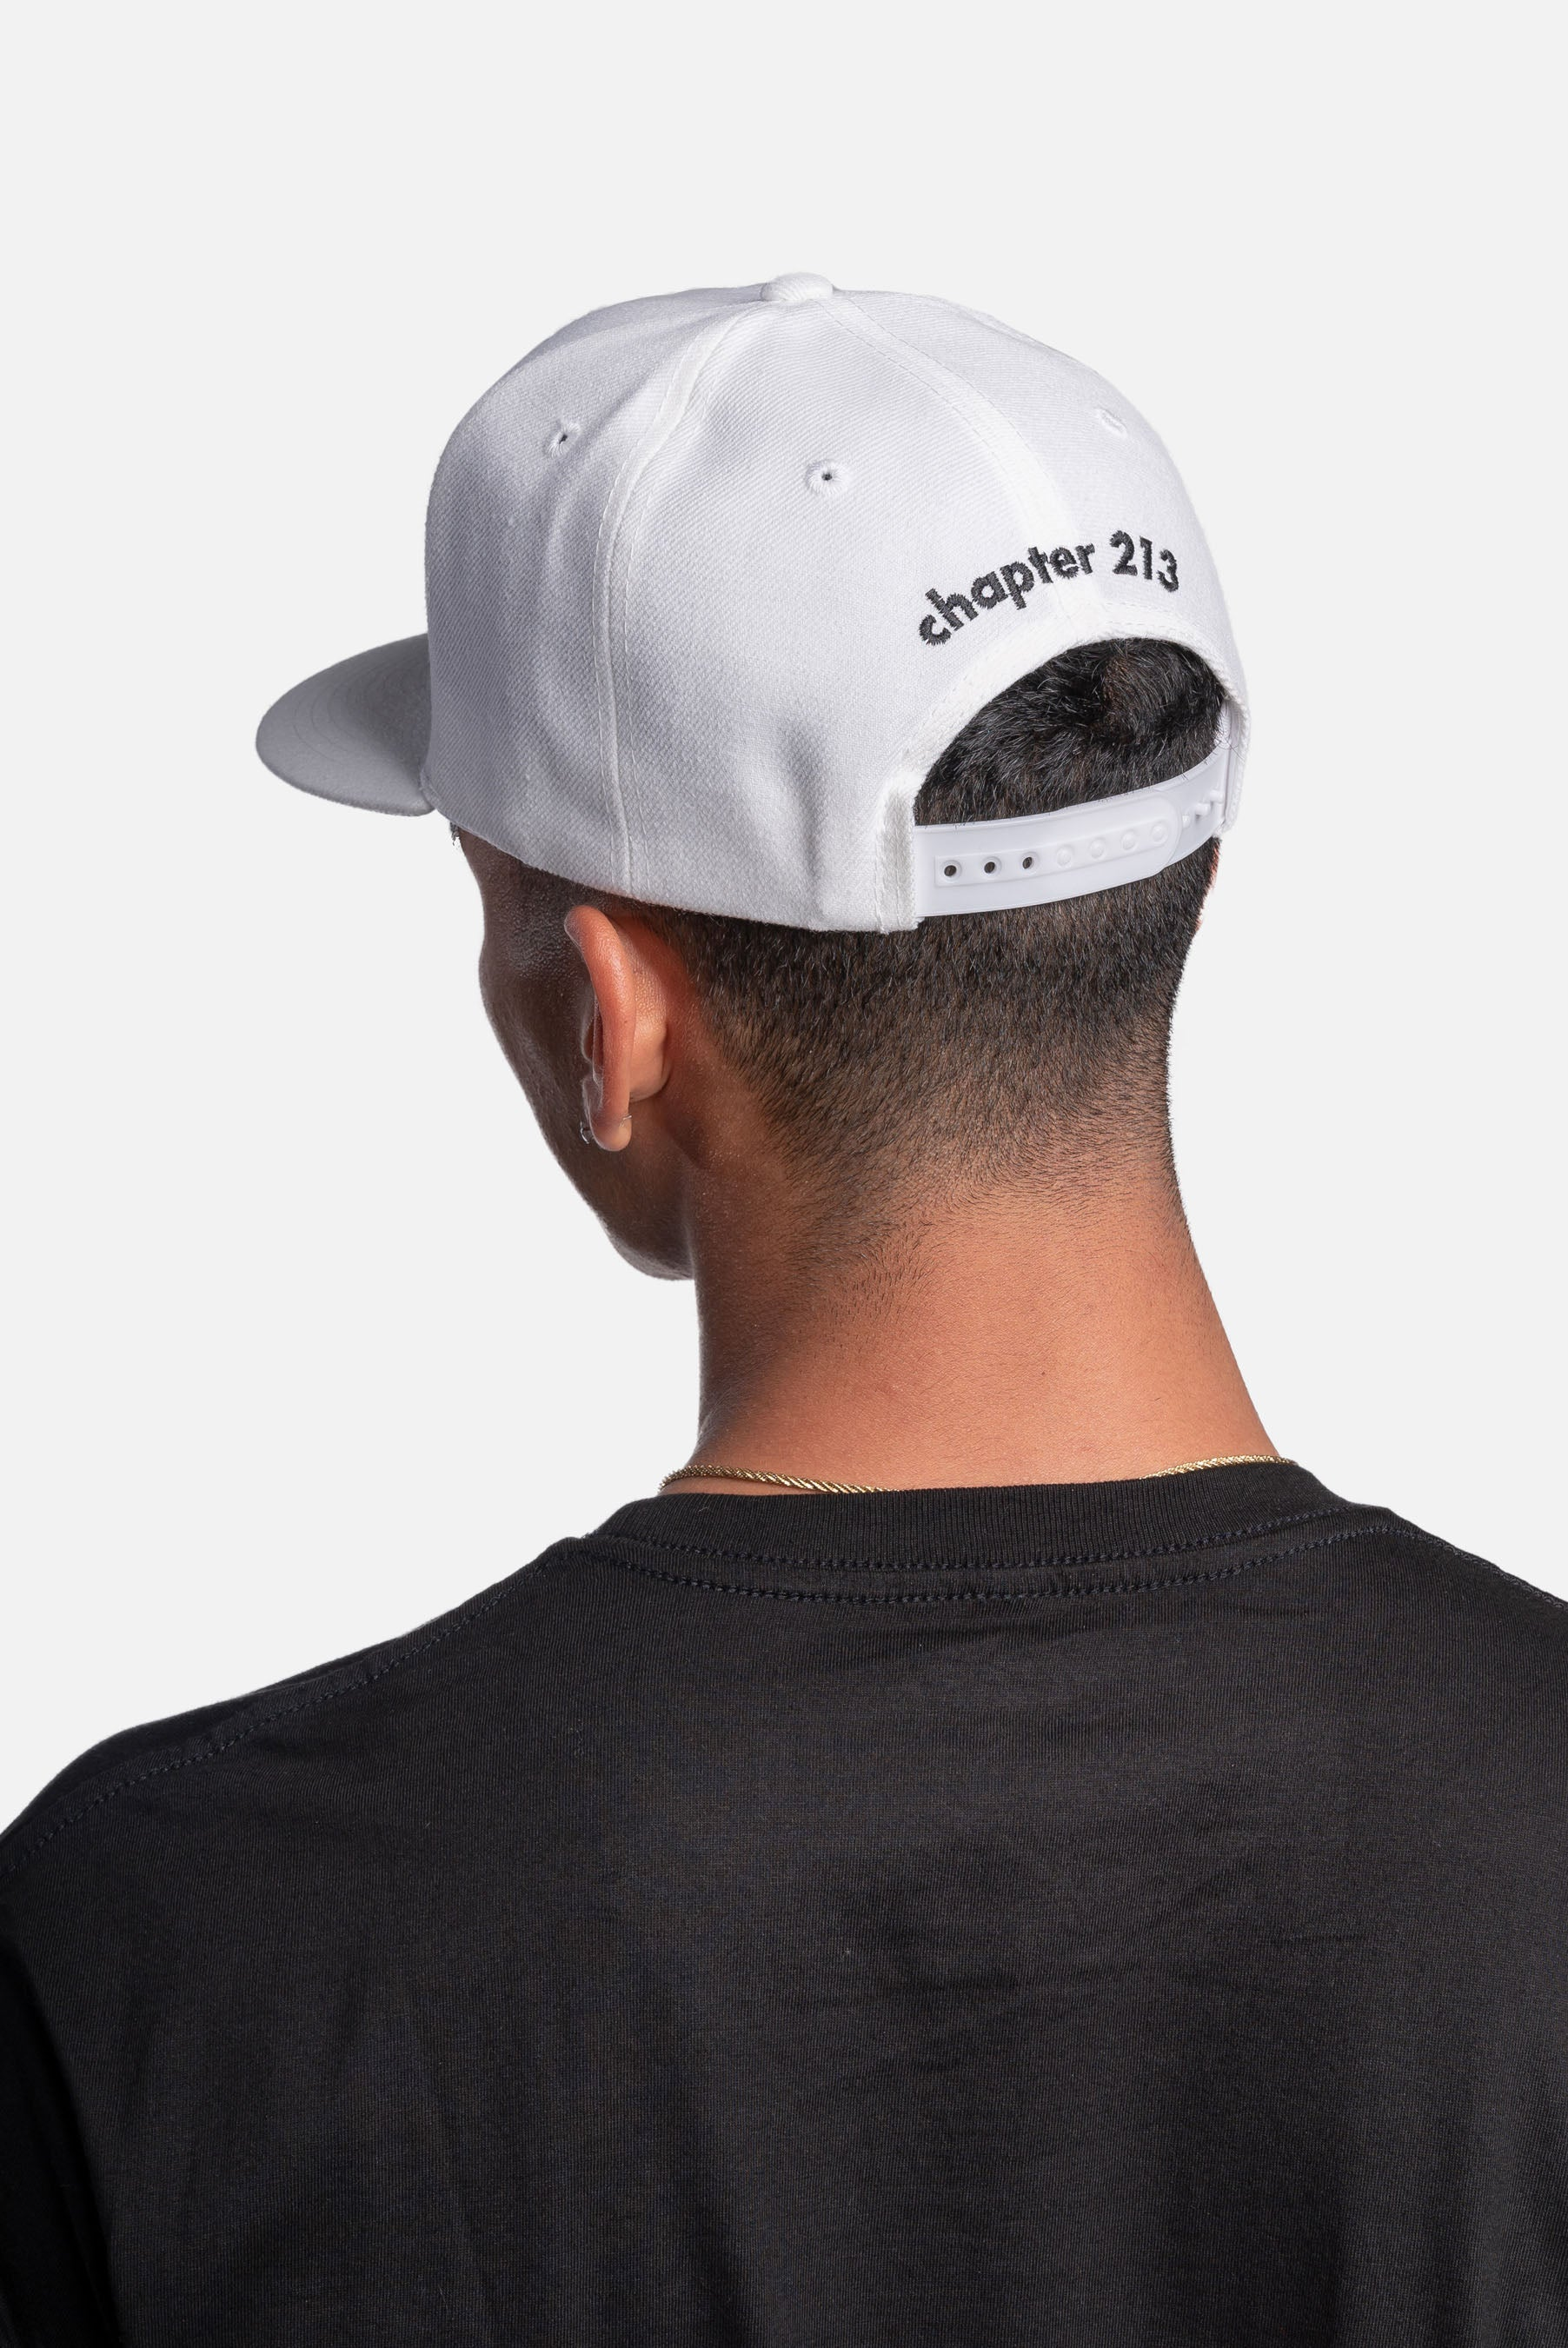 stadium article 7 snapback hat - scrt society